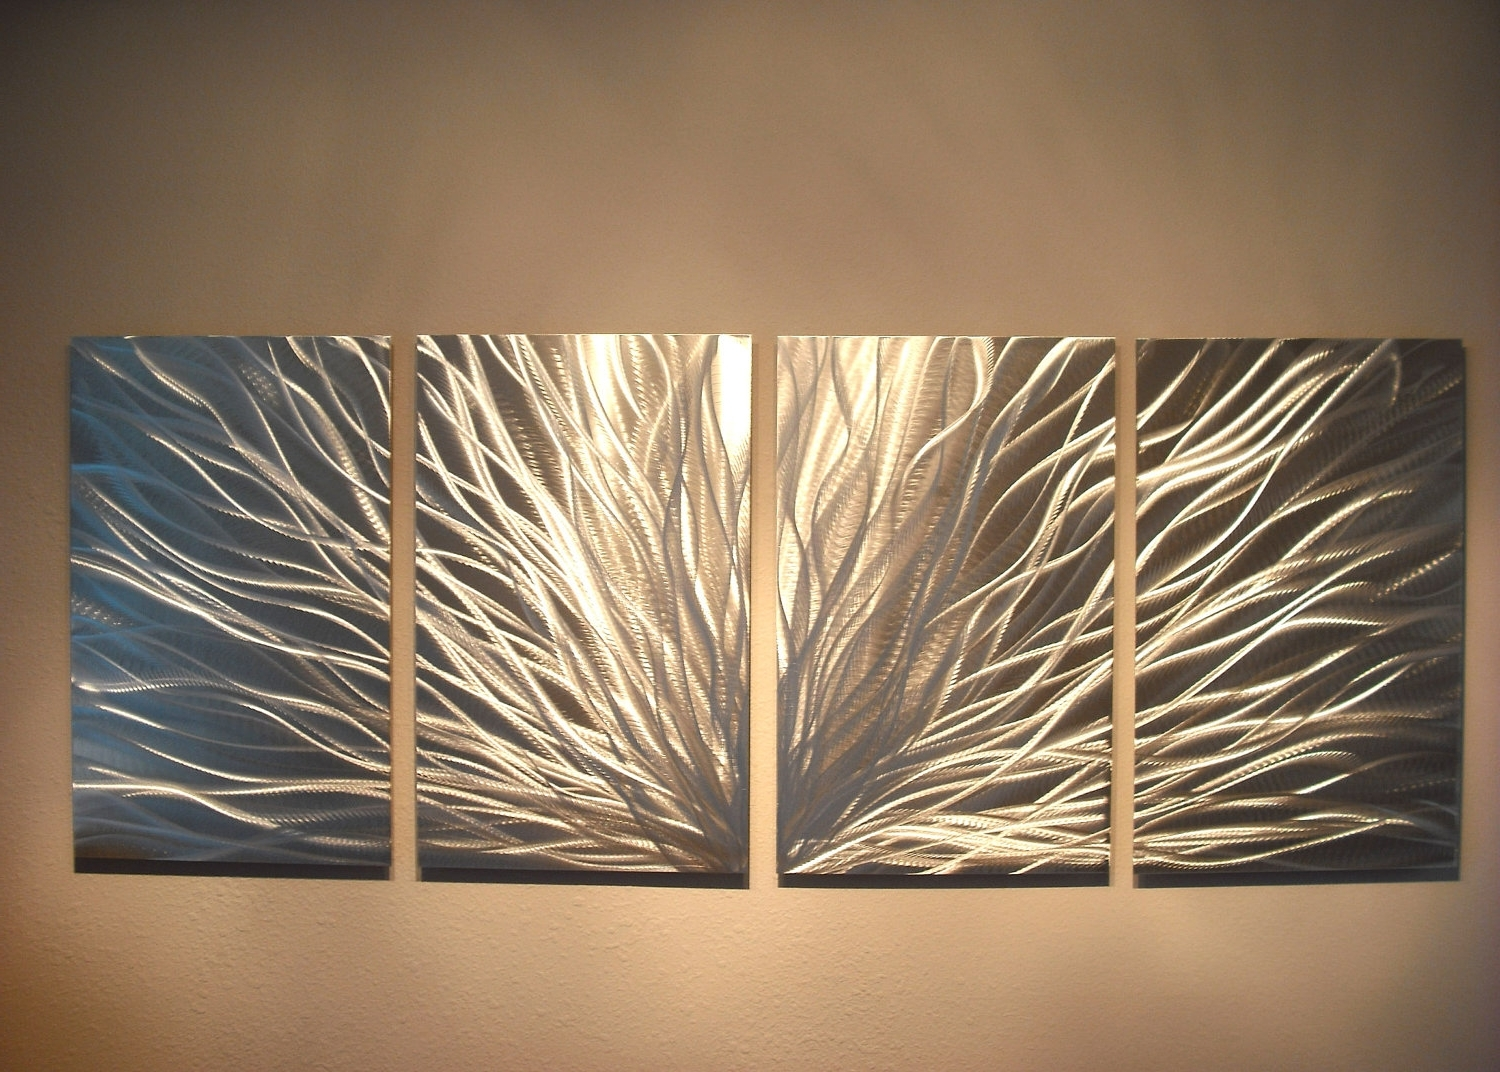 Trendy Decorative Wall Art Within Radiance – Abstract Metal Wall Art Contemporary Modern Decor On Storenvy (View 14 of 15)